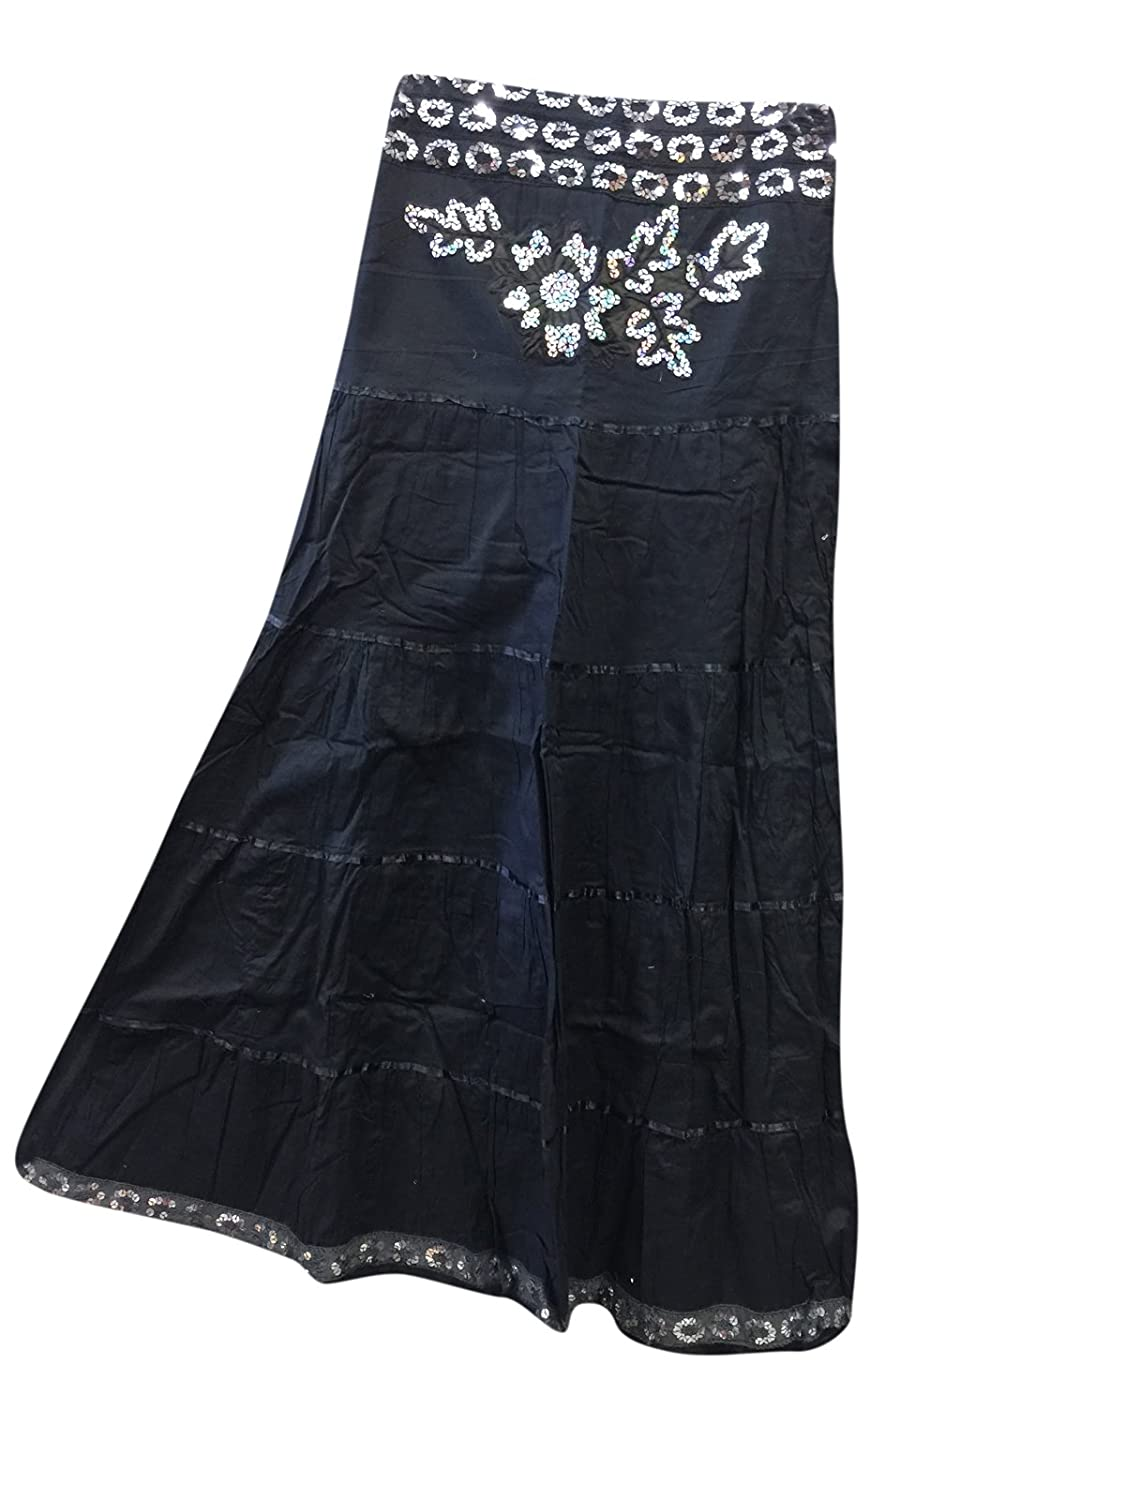 Mogul Interior Bohemian Gothic Skirts Black Sequin Gypsy Flirty Long Maxi Skirts , Gift For Her